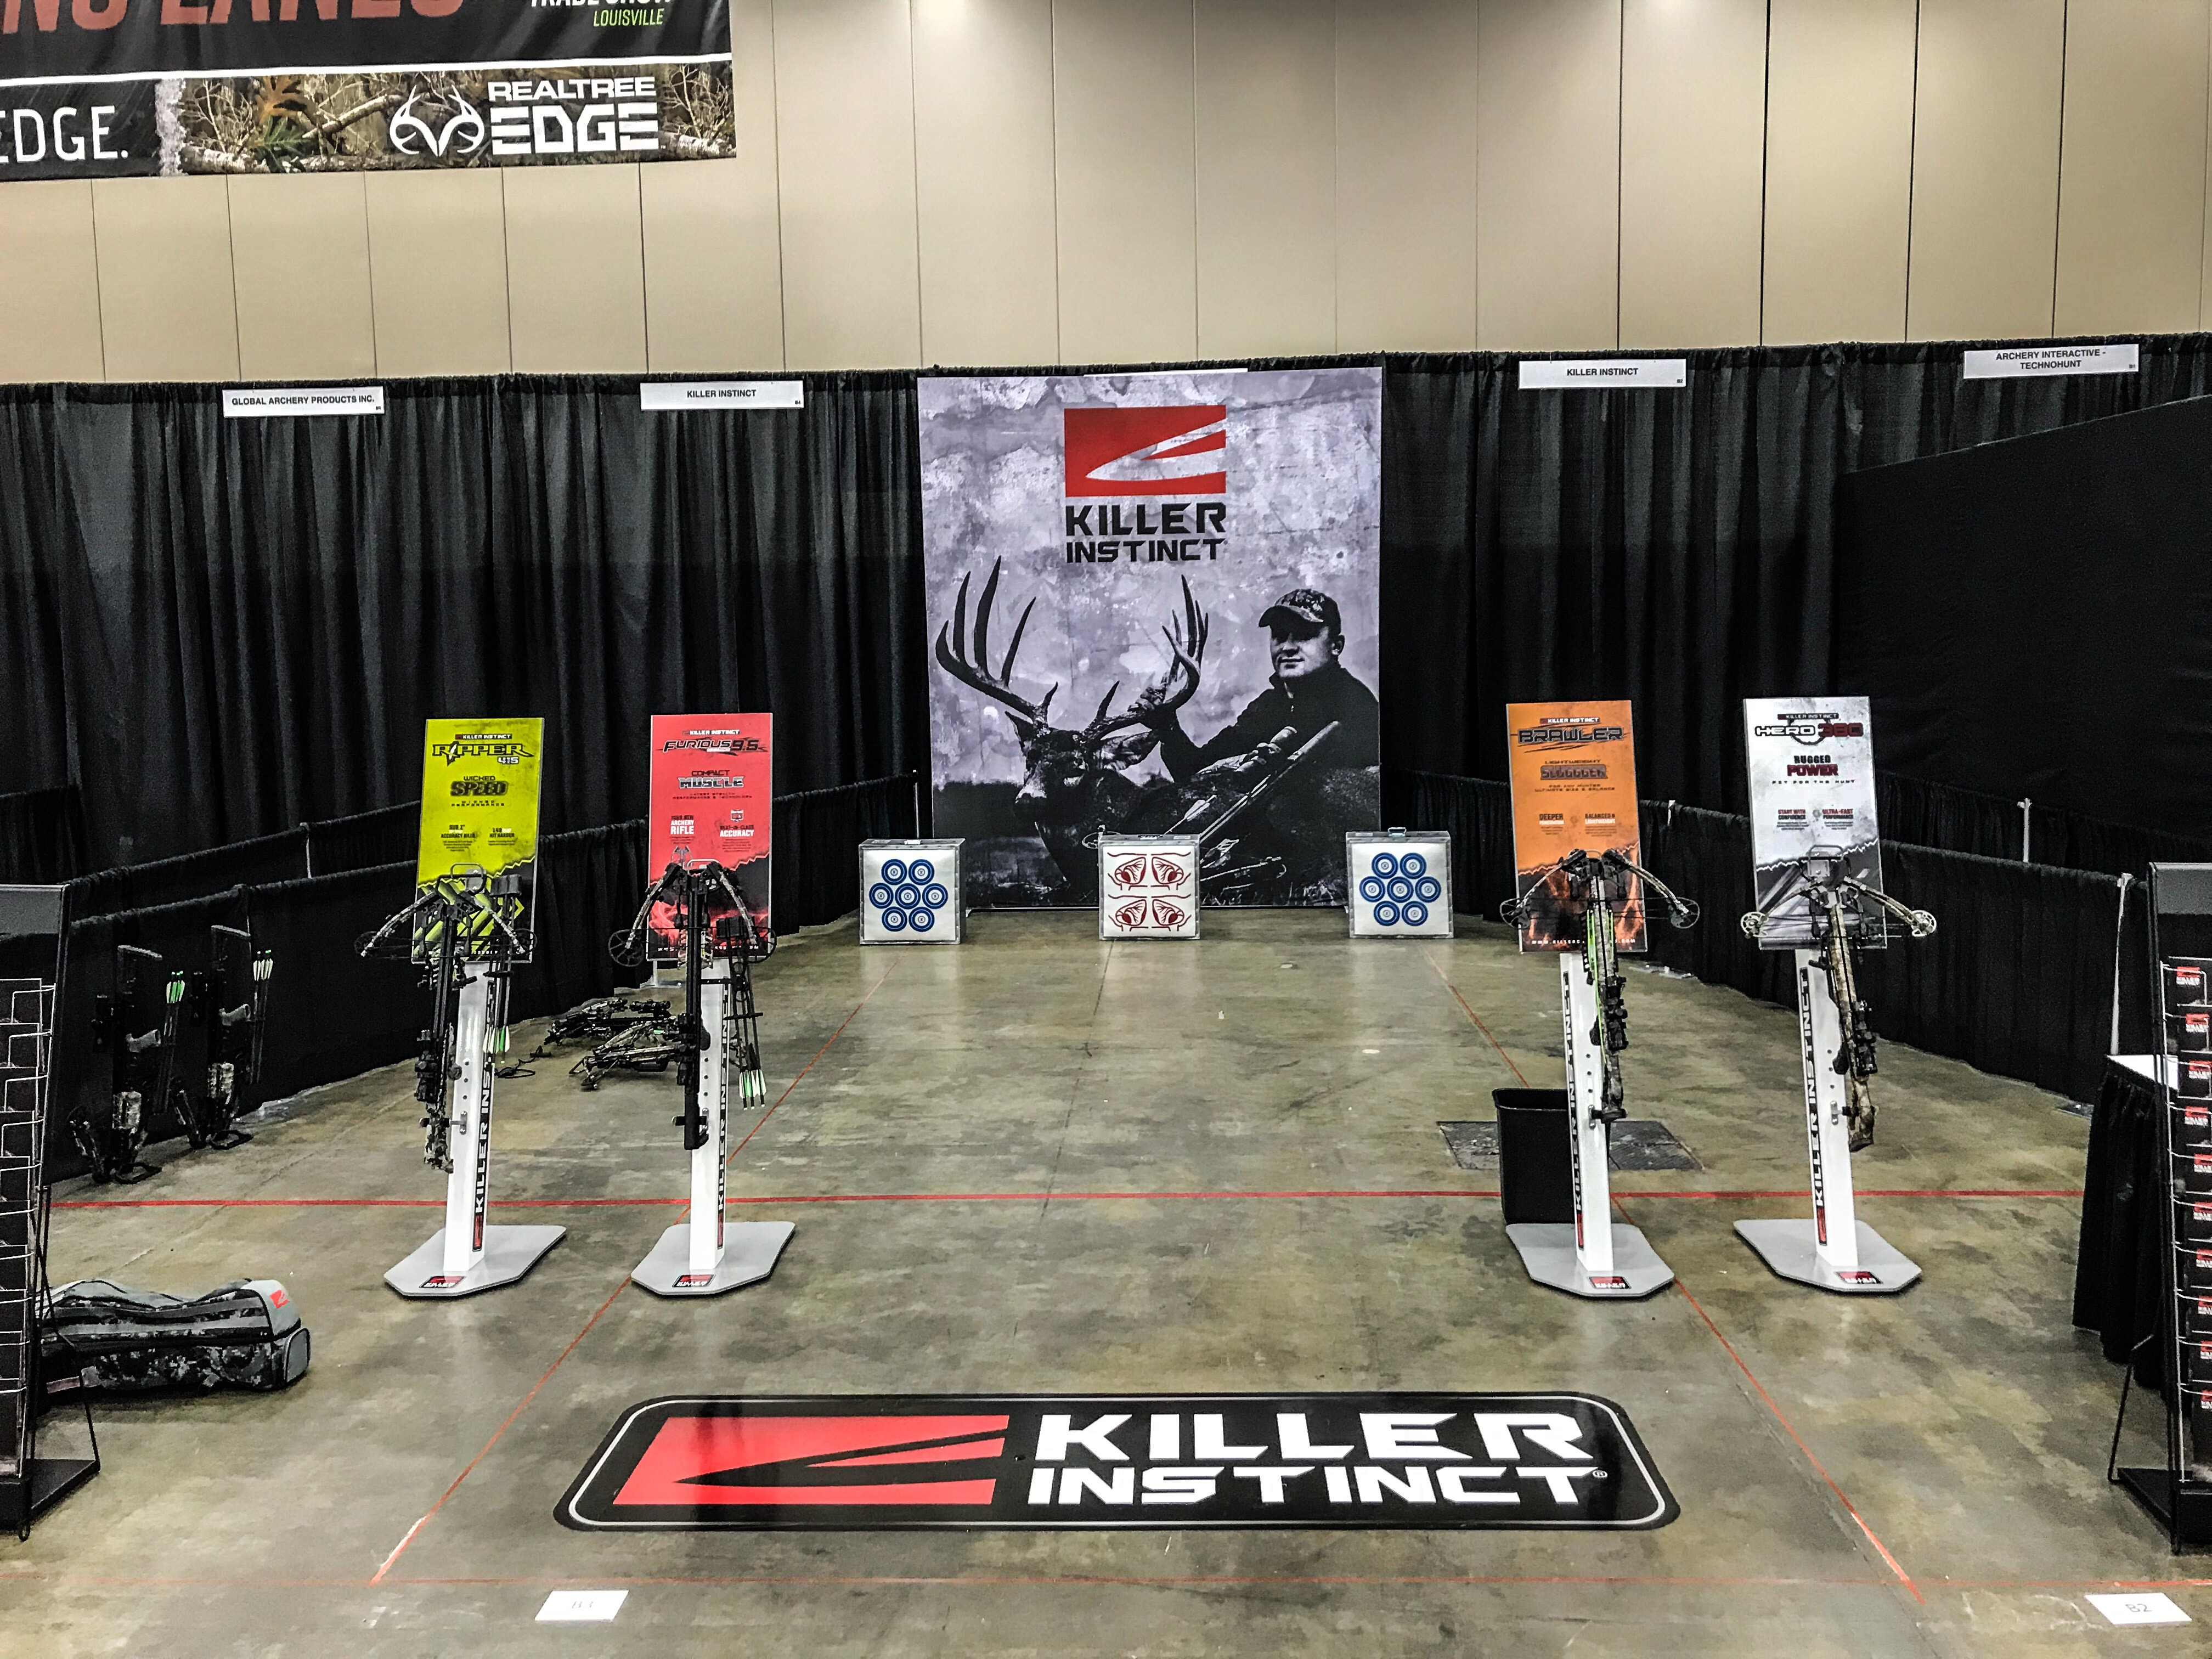 Killer Instinct ATA Shooting lanes where dealers tried out the new crossbows.